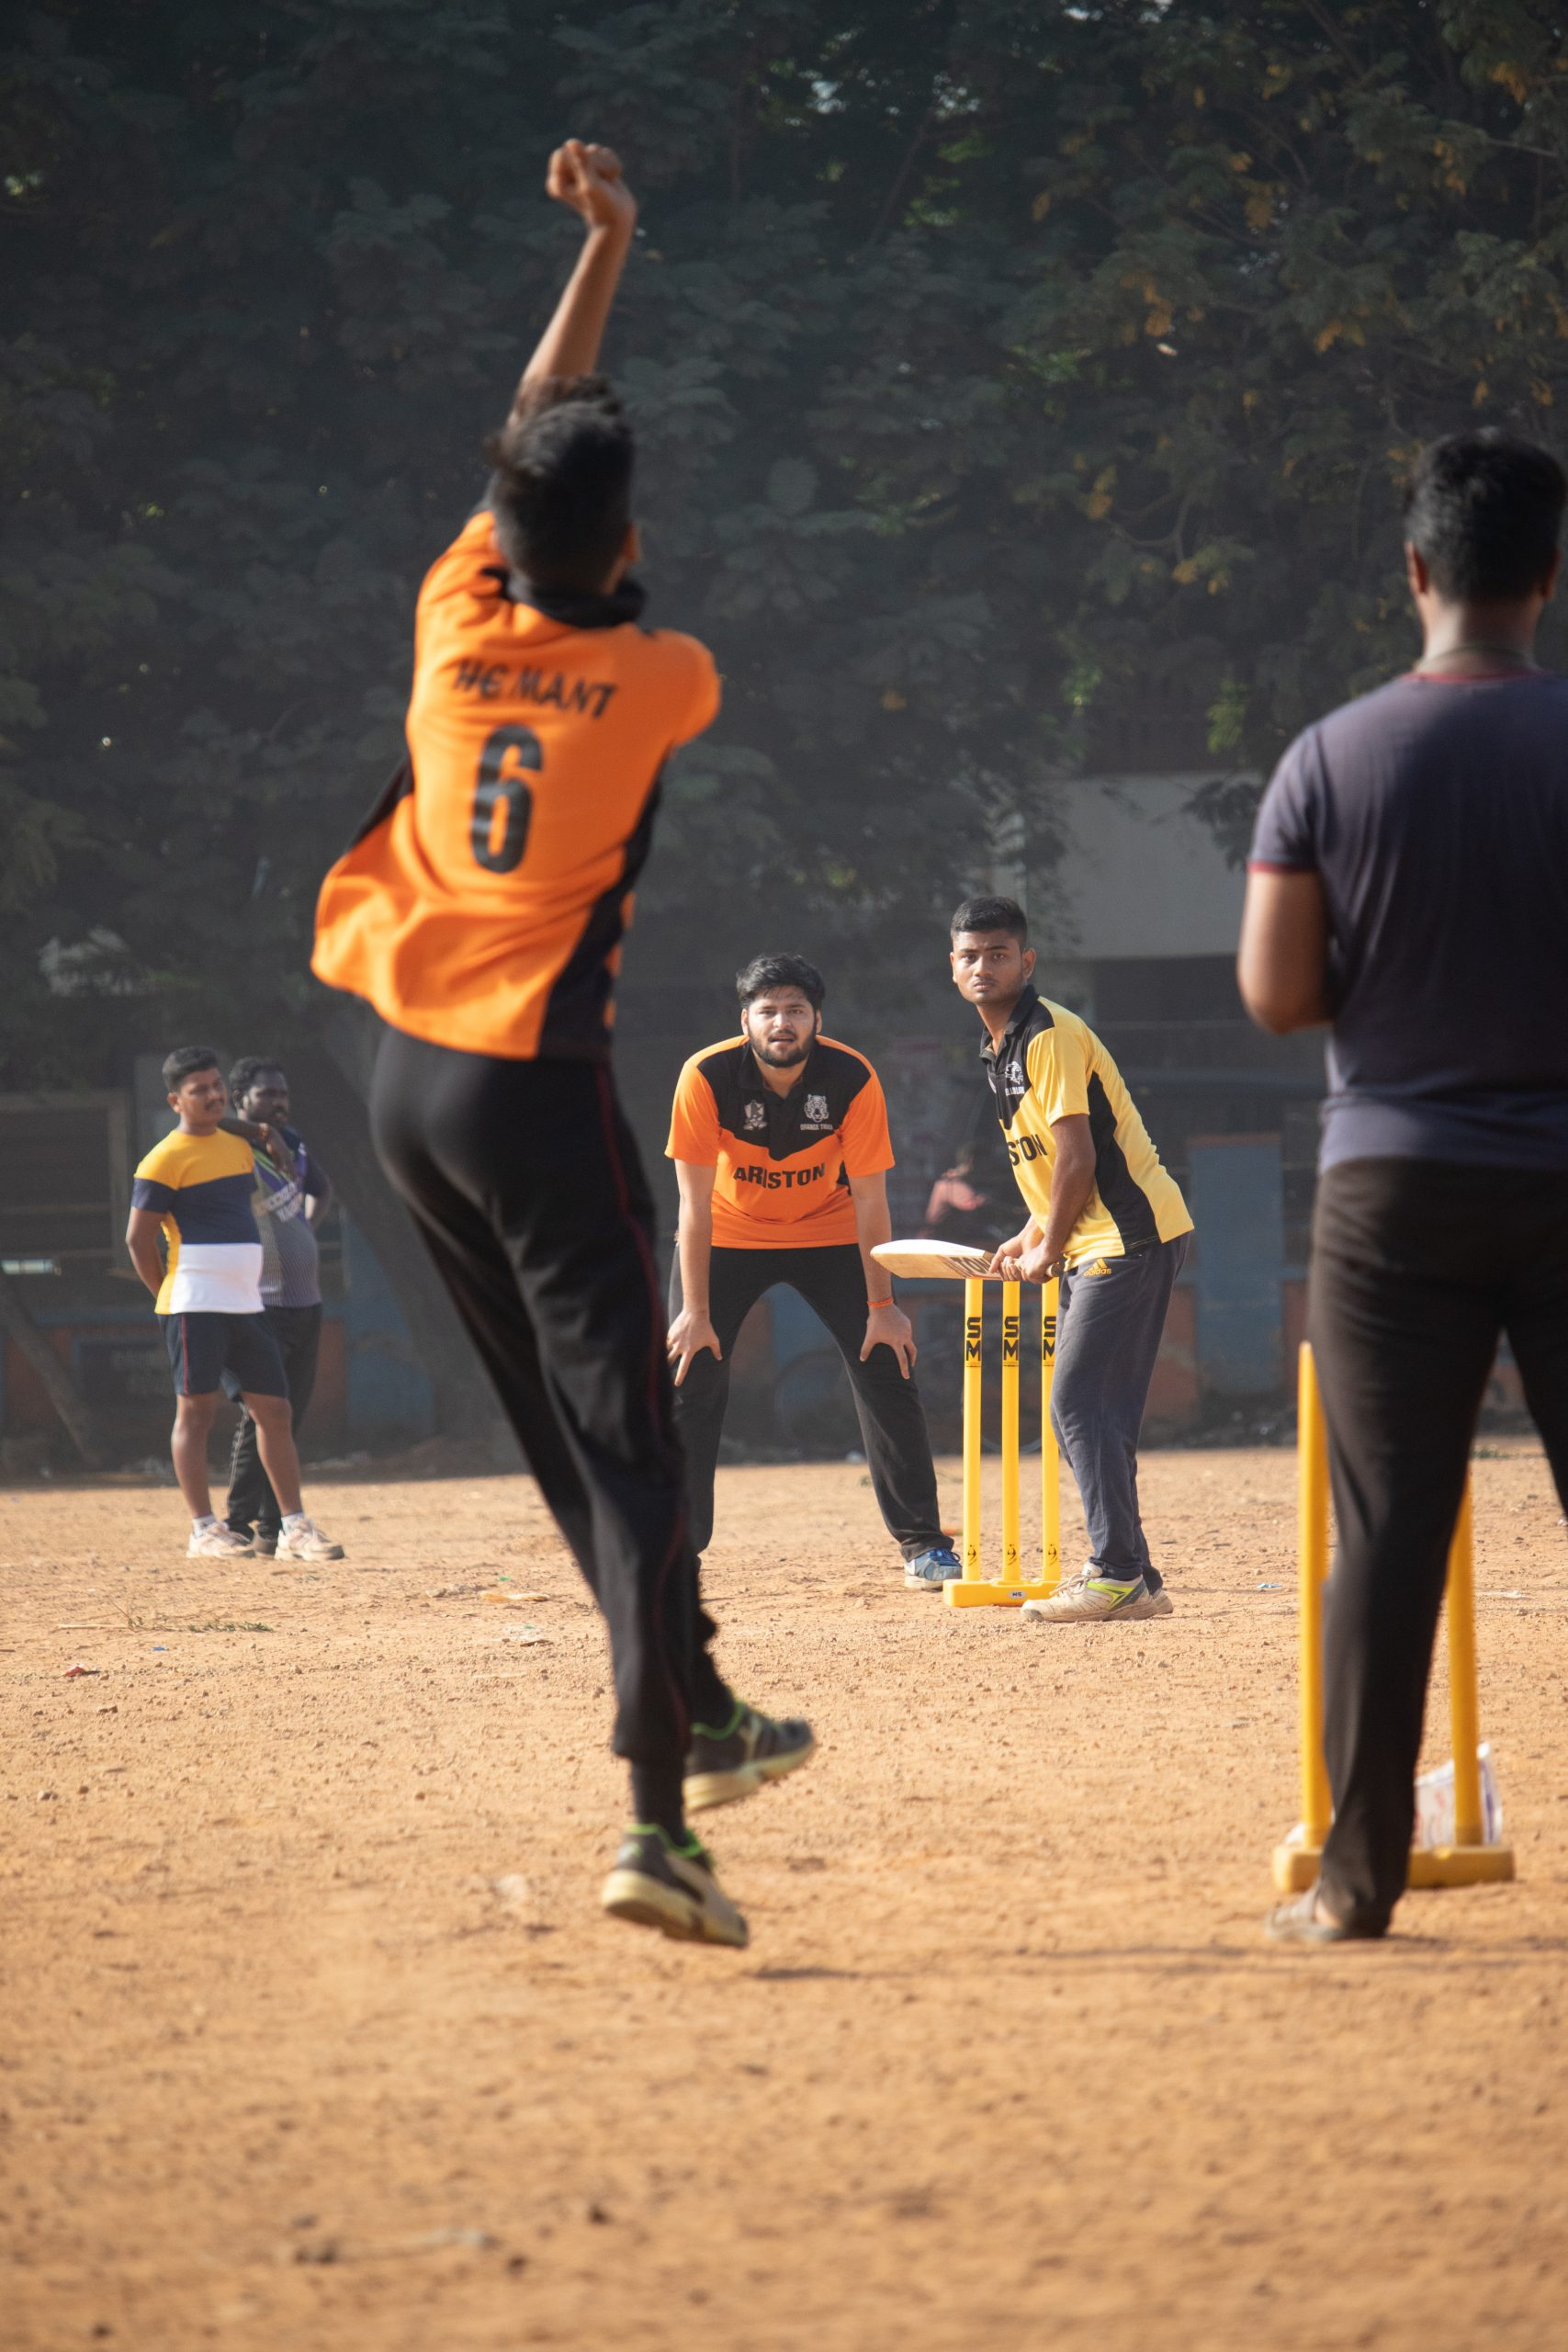 Game of Cricket in action